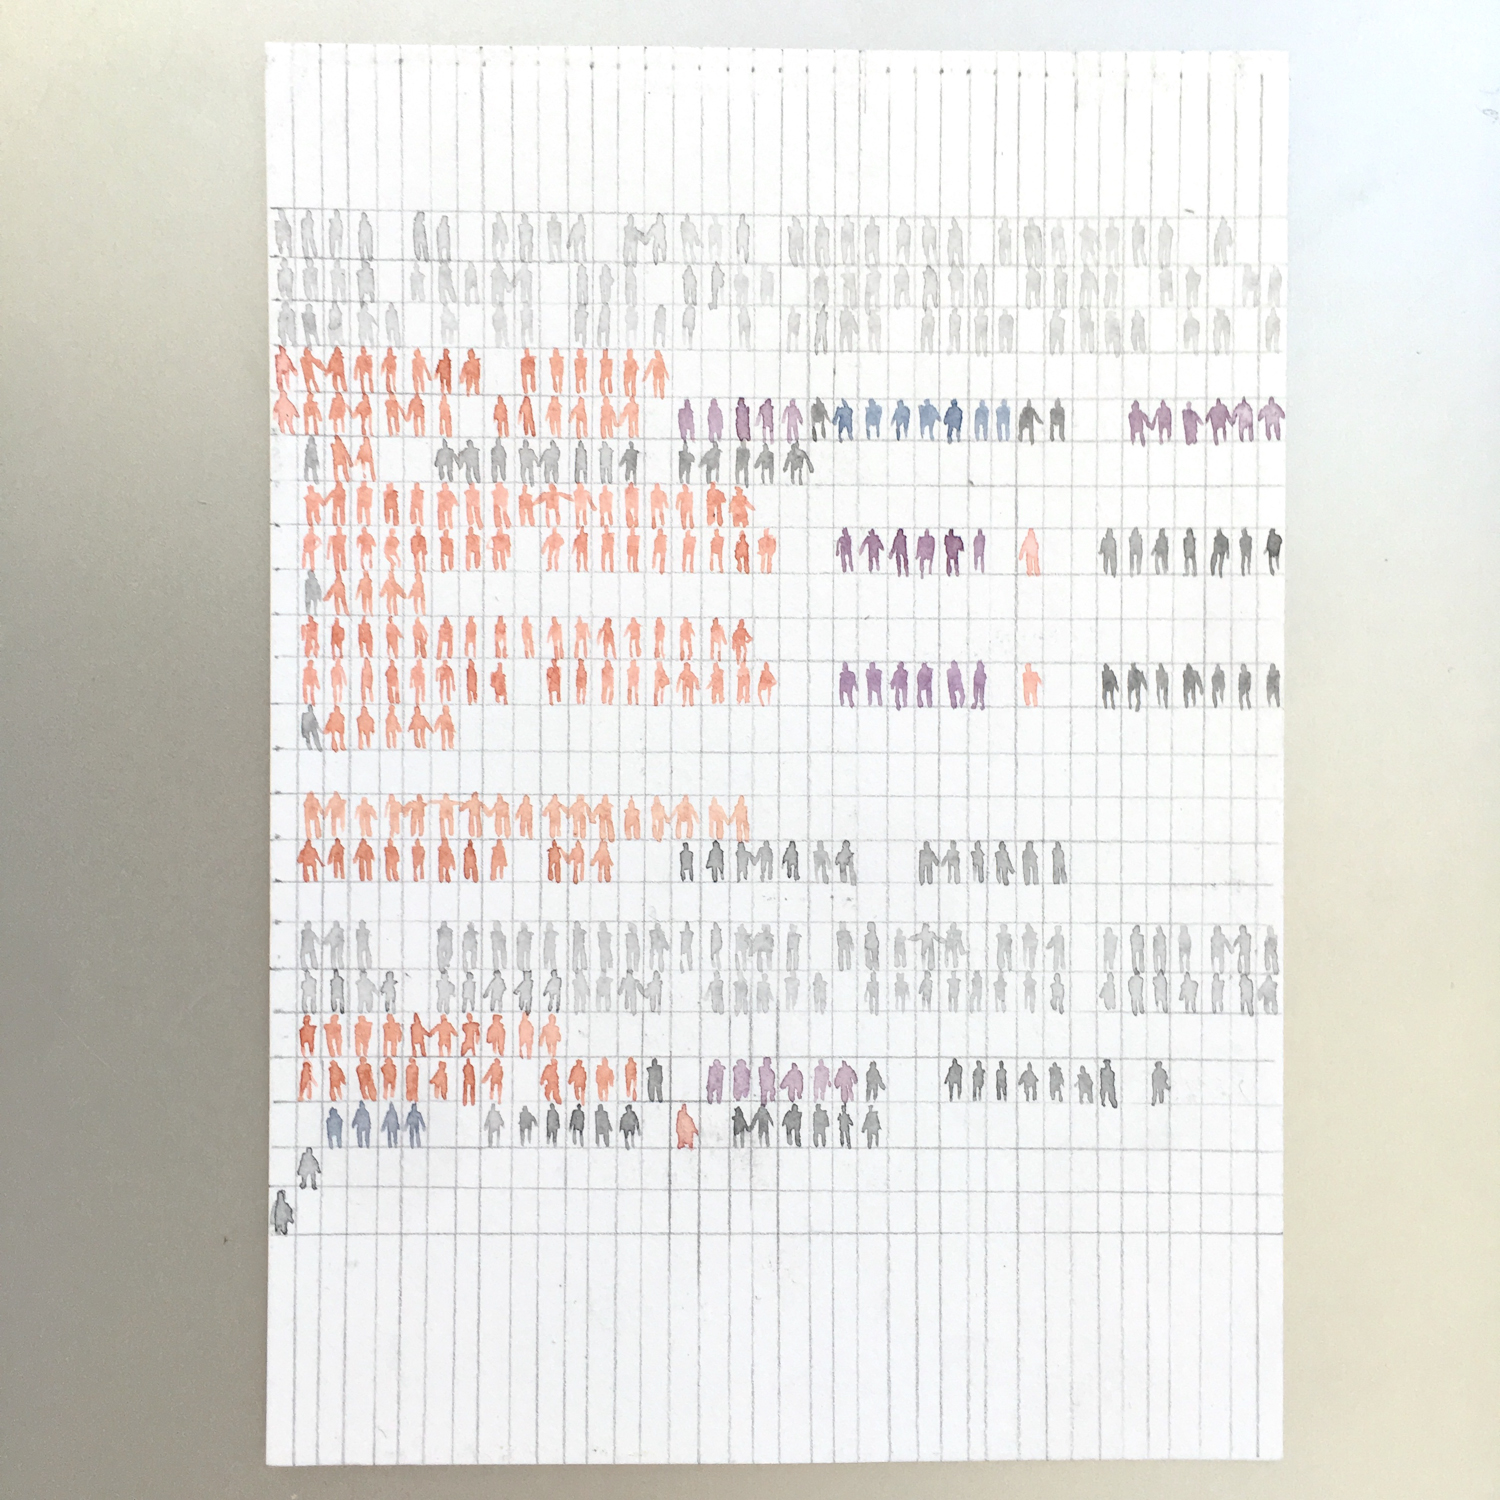 Array. Watercolor and pencil on paper. The colors here represent the default syntax highlighting in Swift.